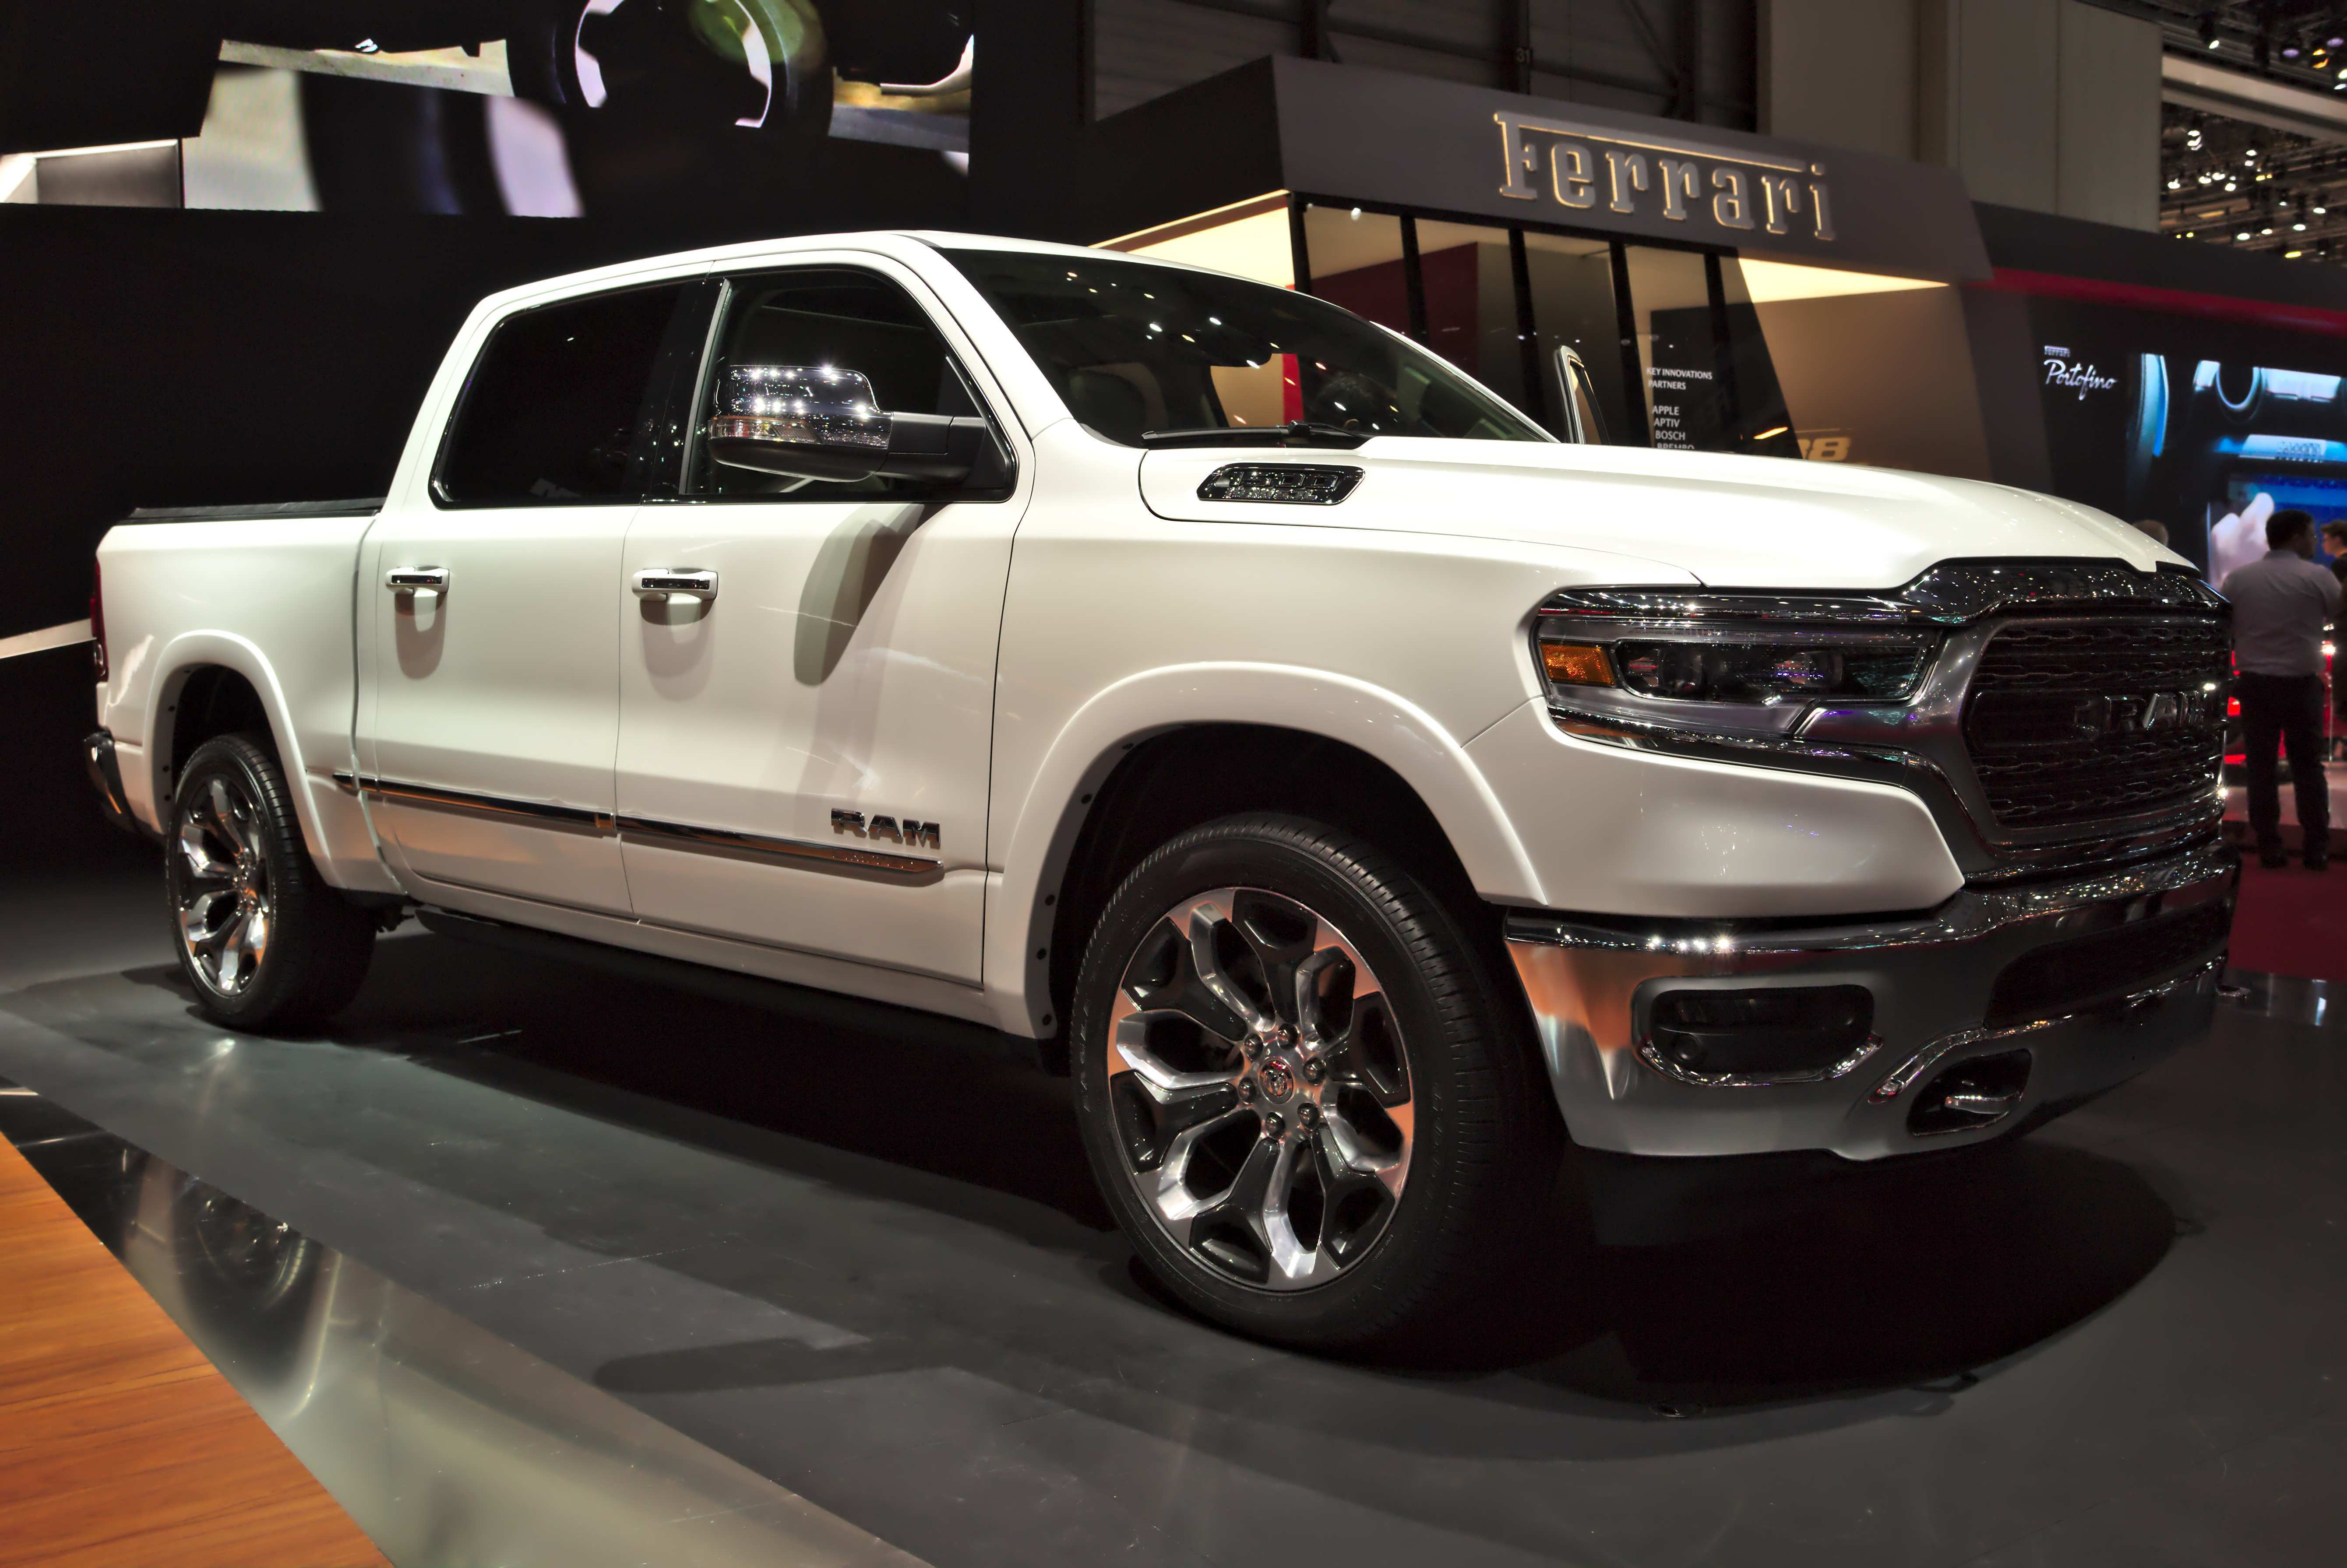 21 Gallery of New 2019 Dodge Ram 4X4 Specs New Concept by New 2019 Dodge Ram 4X4 Specs